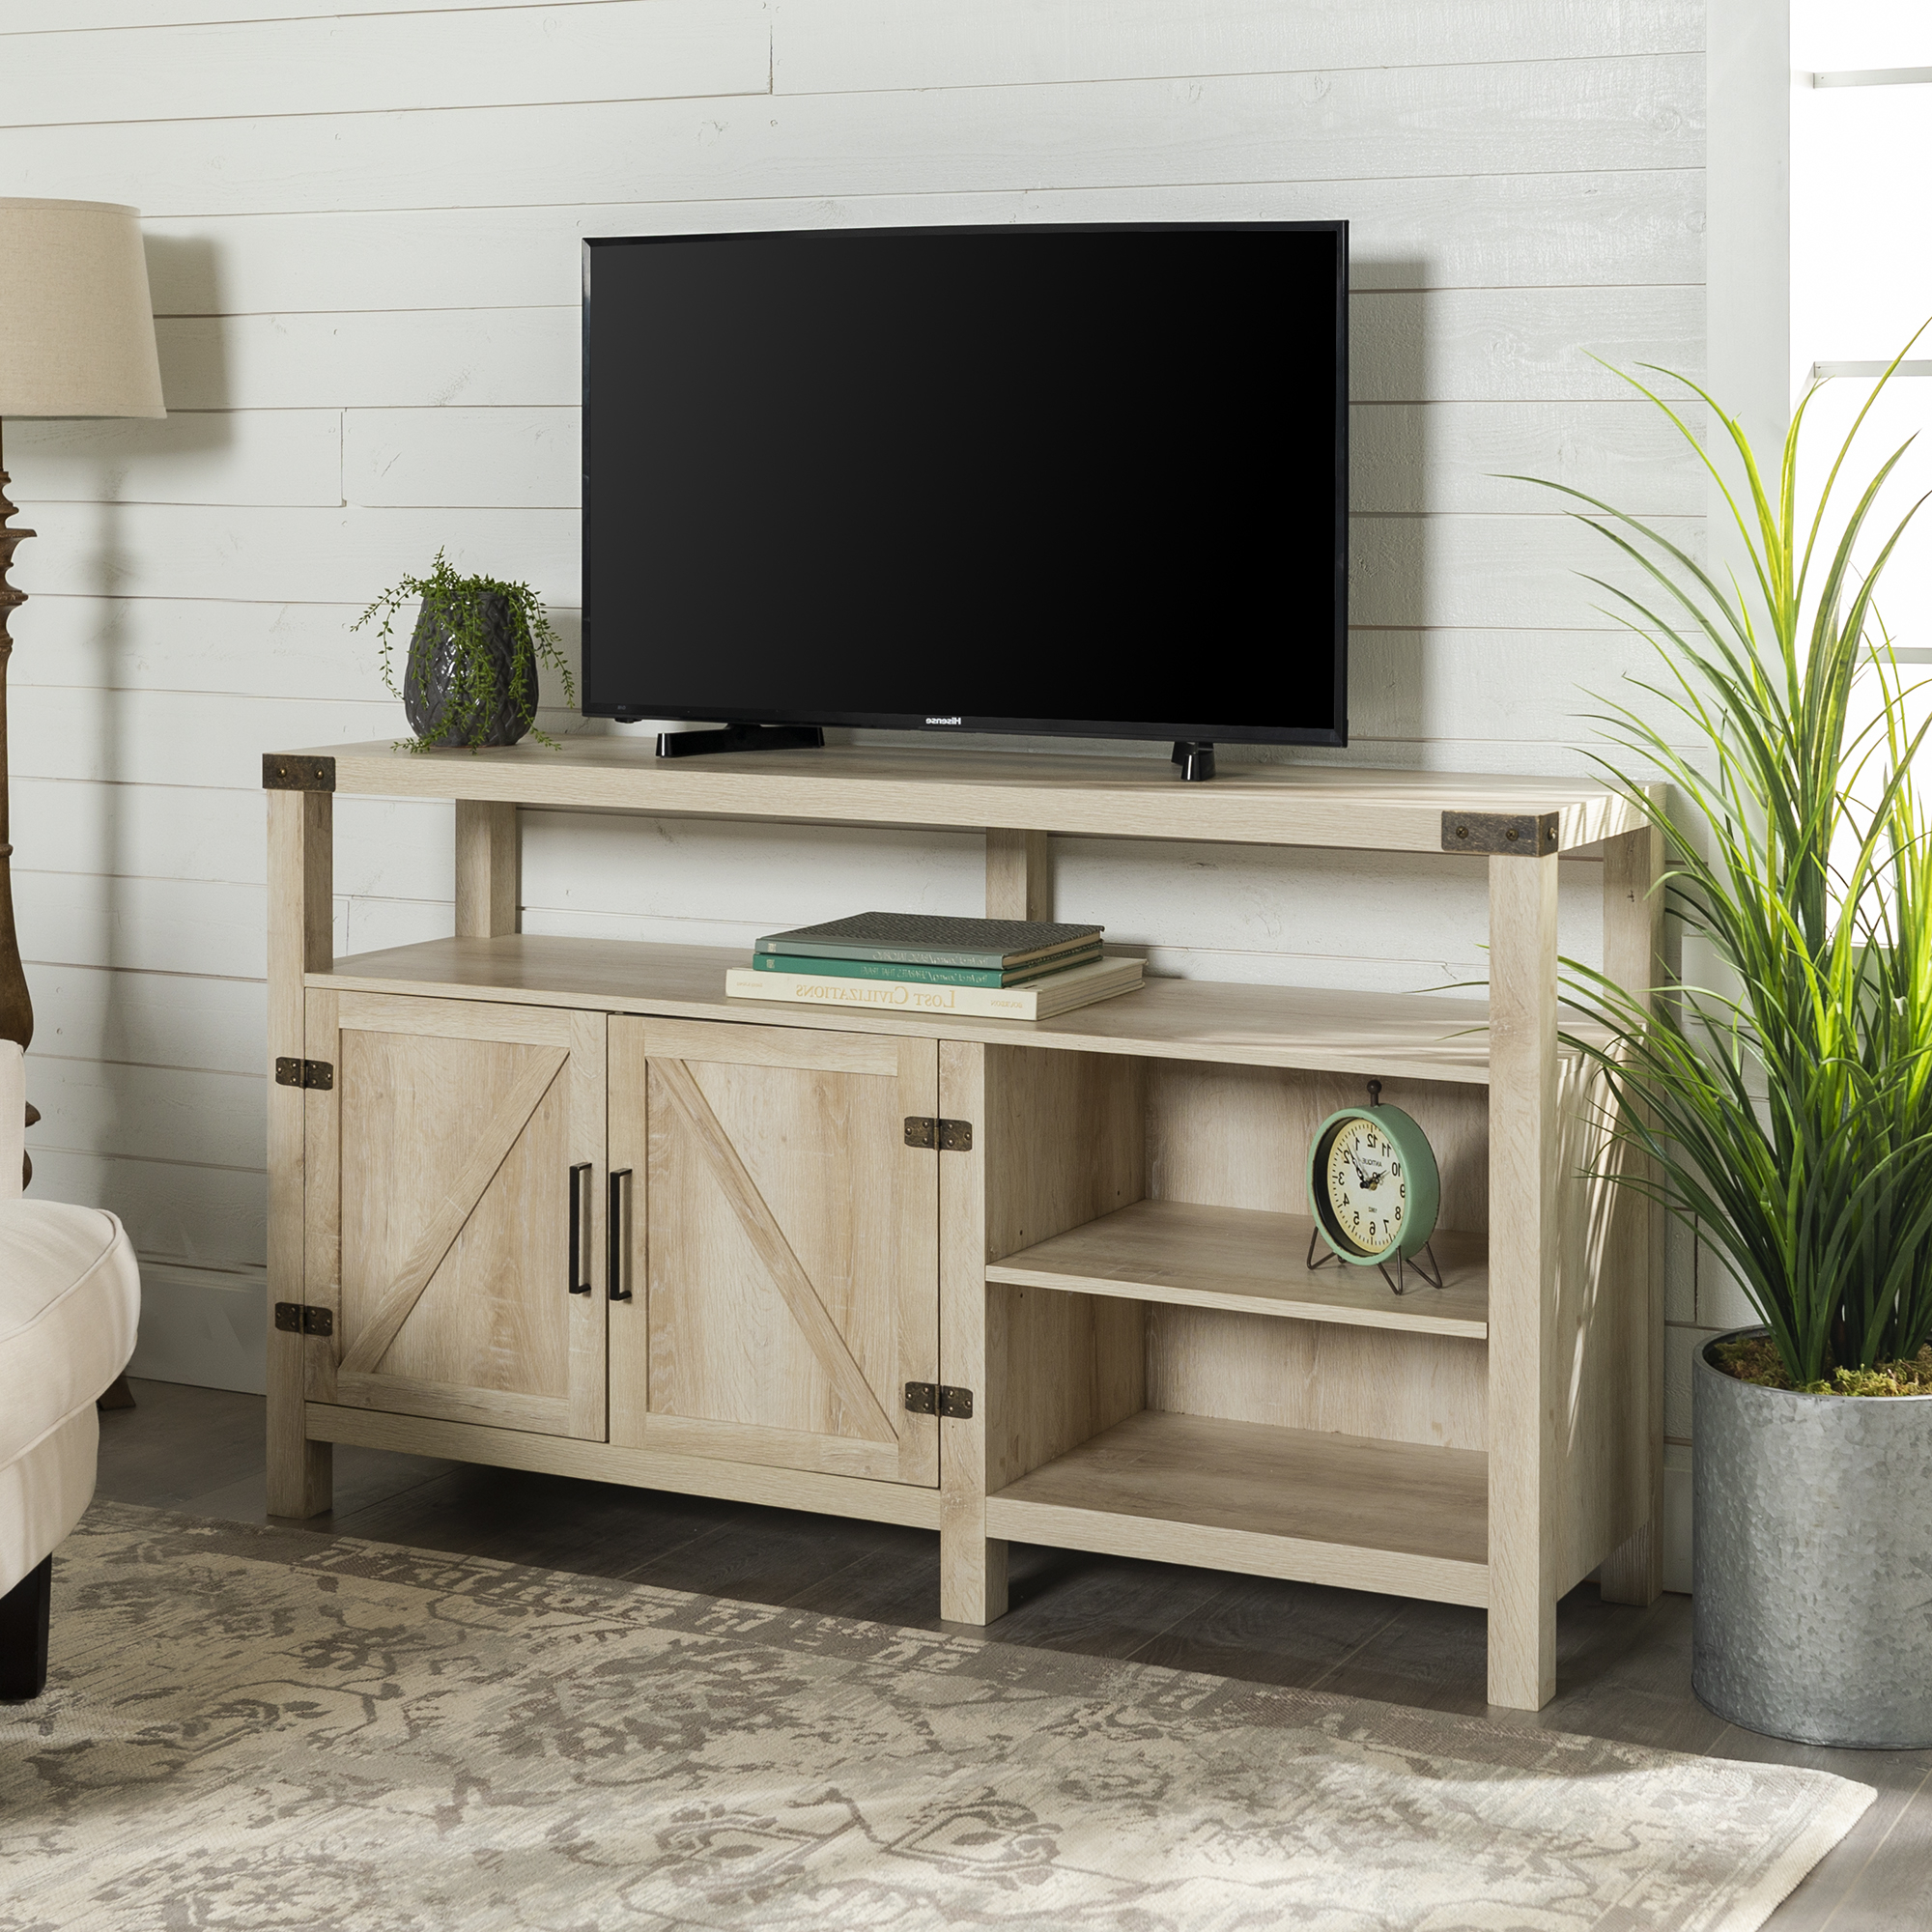 Most Recent Woven Paths Modern Farmhouse Oak Tv Stand For Tvs Up To 65 Intended For Woven Paths Franklin Grooved Two Door Tv Stands (View 2 of 10)